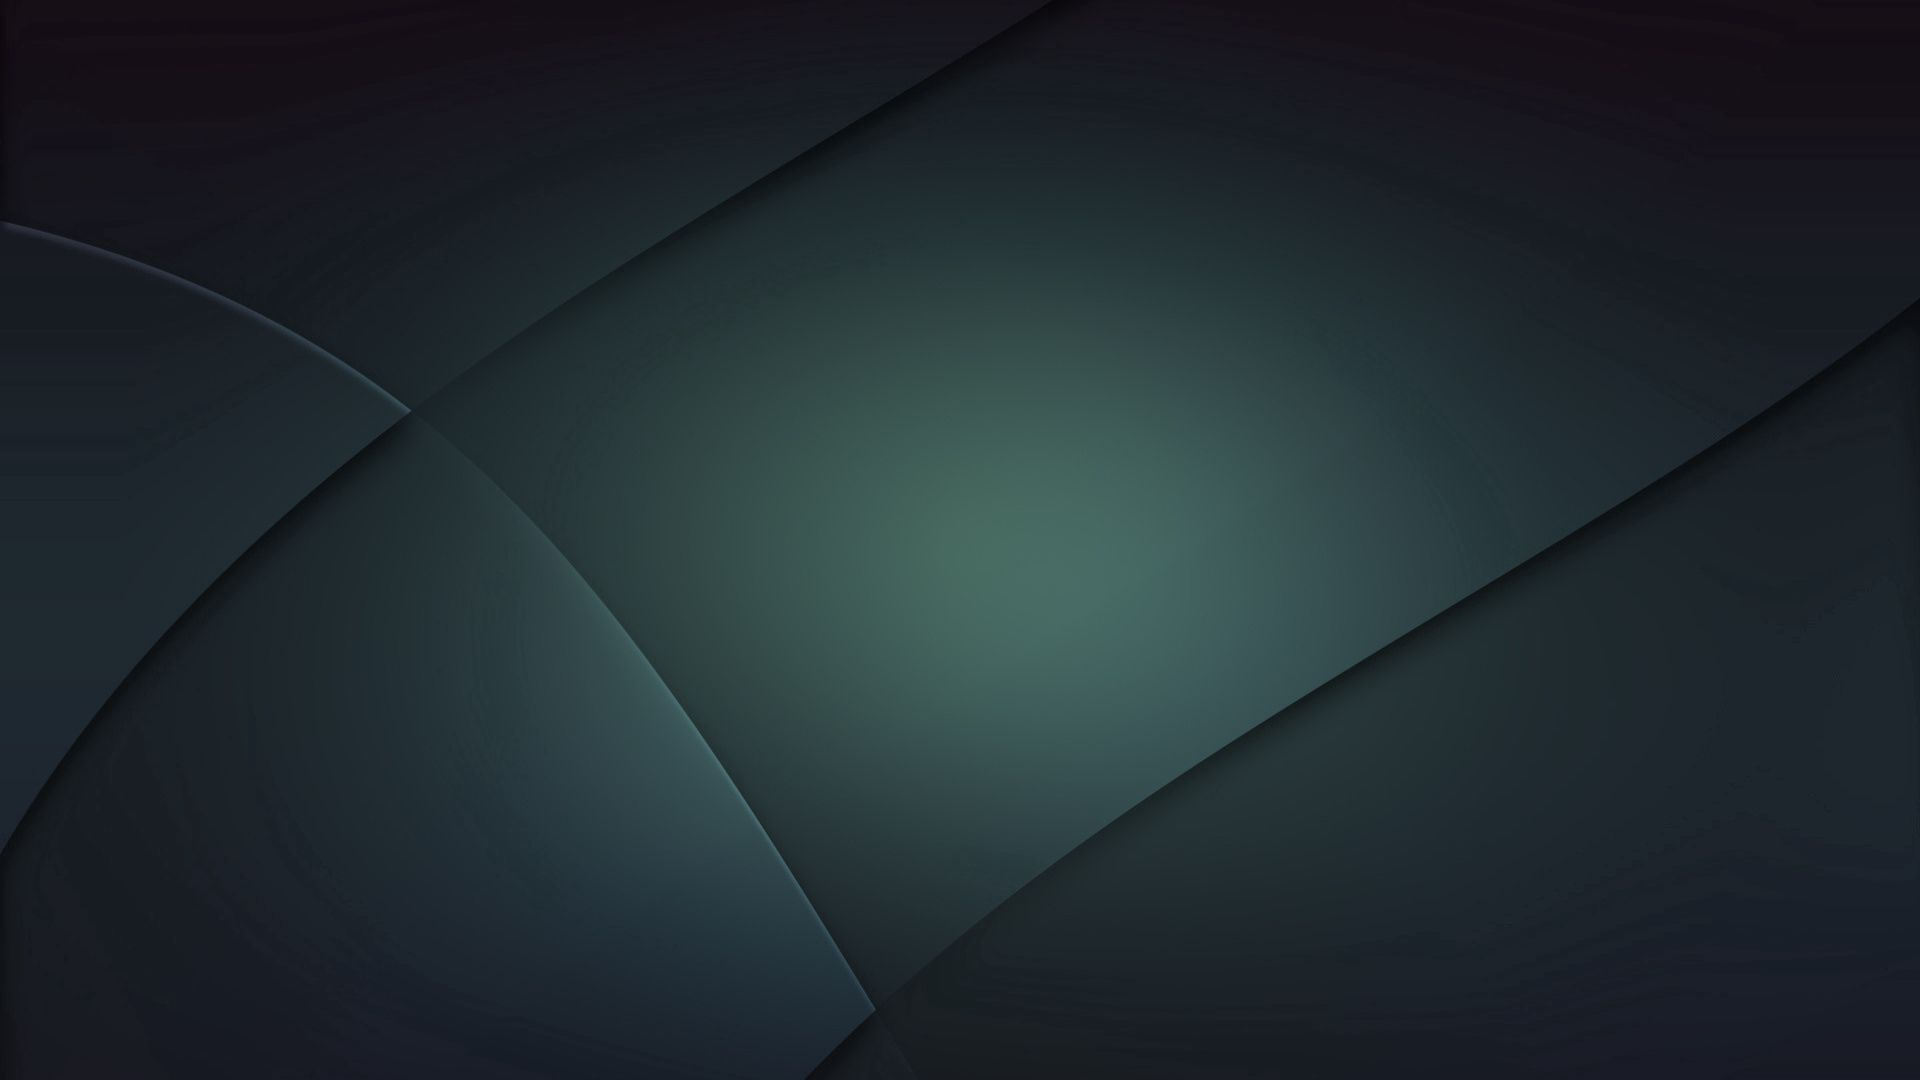 111517 download wallpaper Abstract, Background, Textures, Texture screensavers and pictures for free